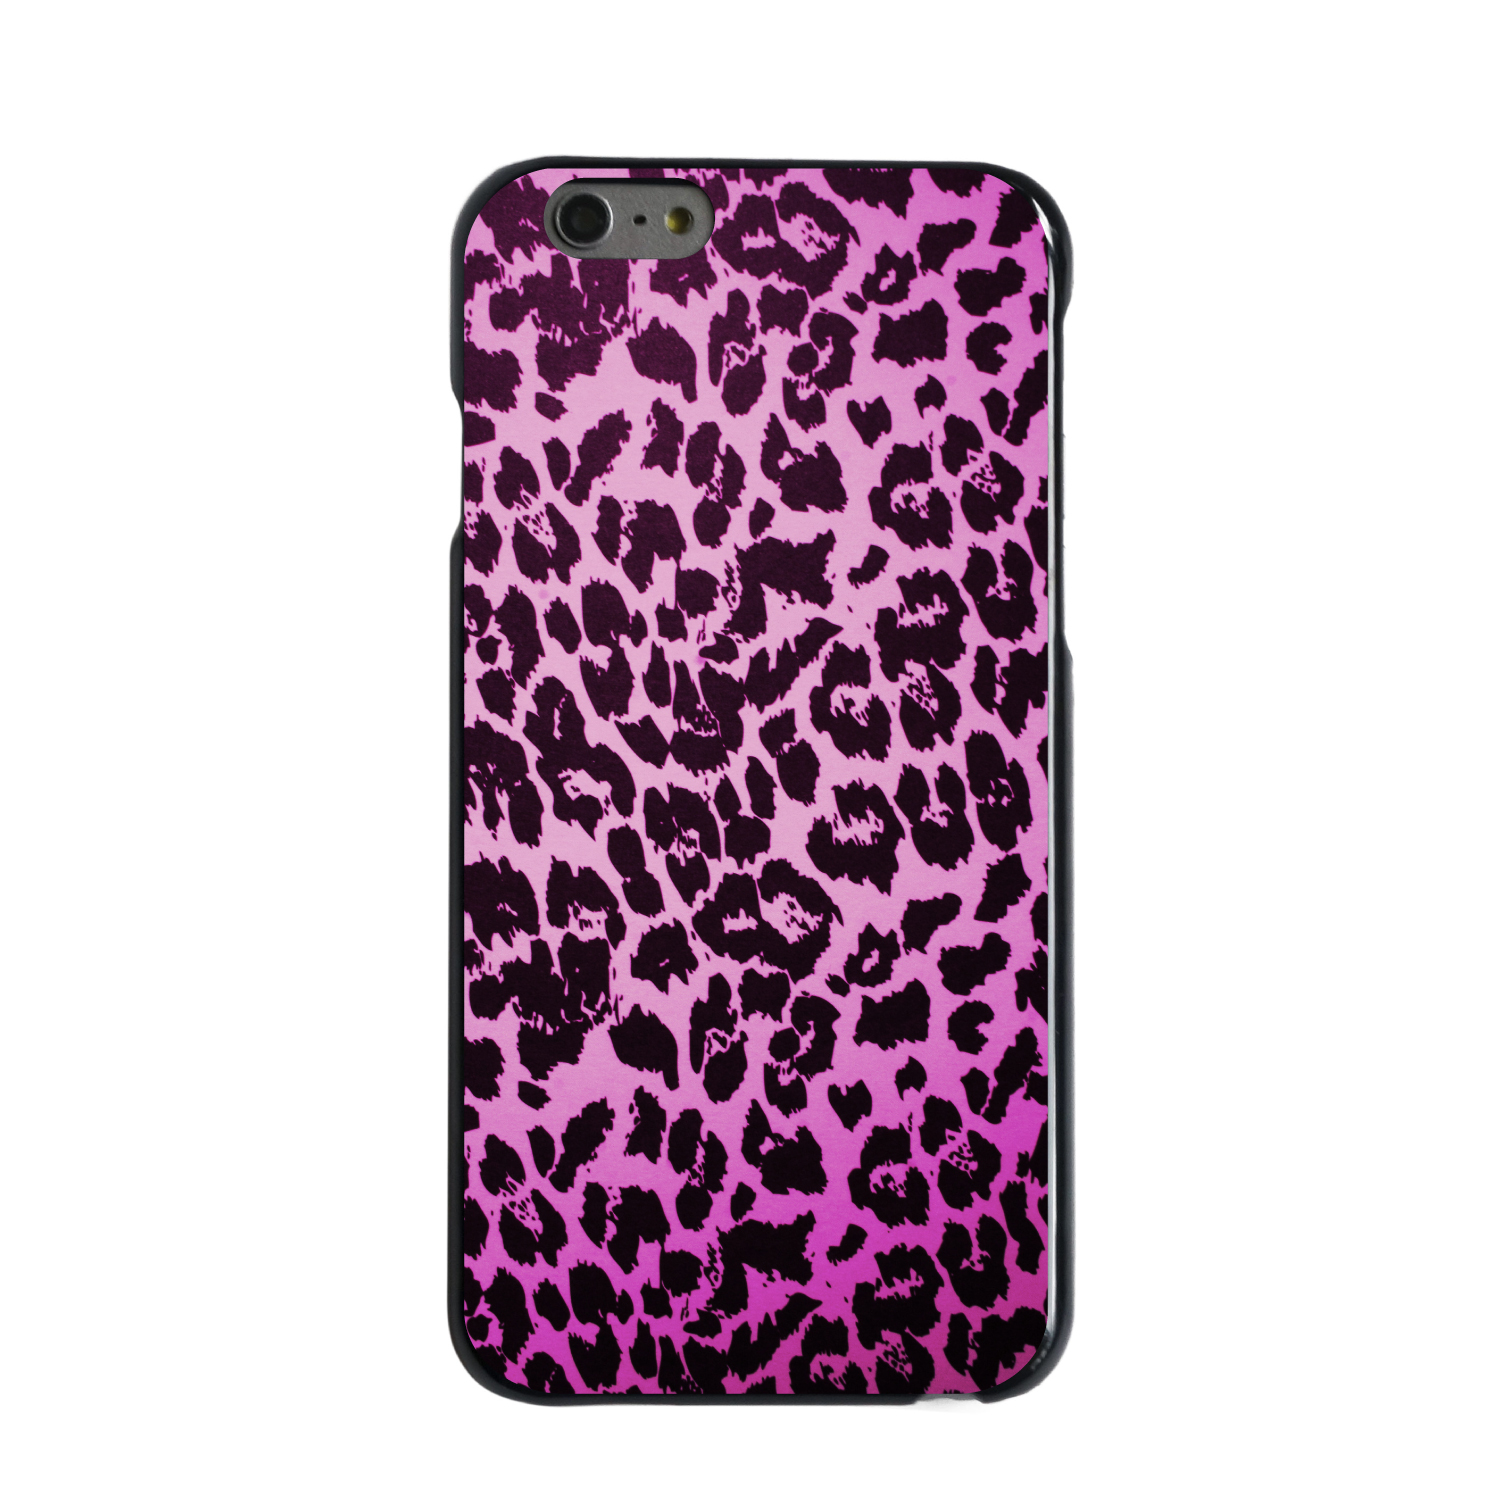 "CUSTOM Black Hard Plastic Snap-On Case for Apple iPhone 6 PLUS / 6S PLUS (5.5"" Screen) - Pink Purple Leopard Skin Spots"